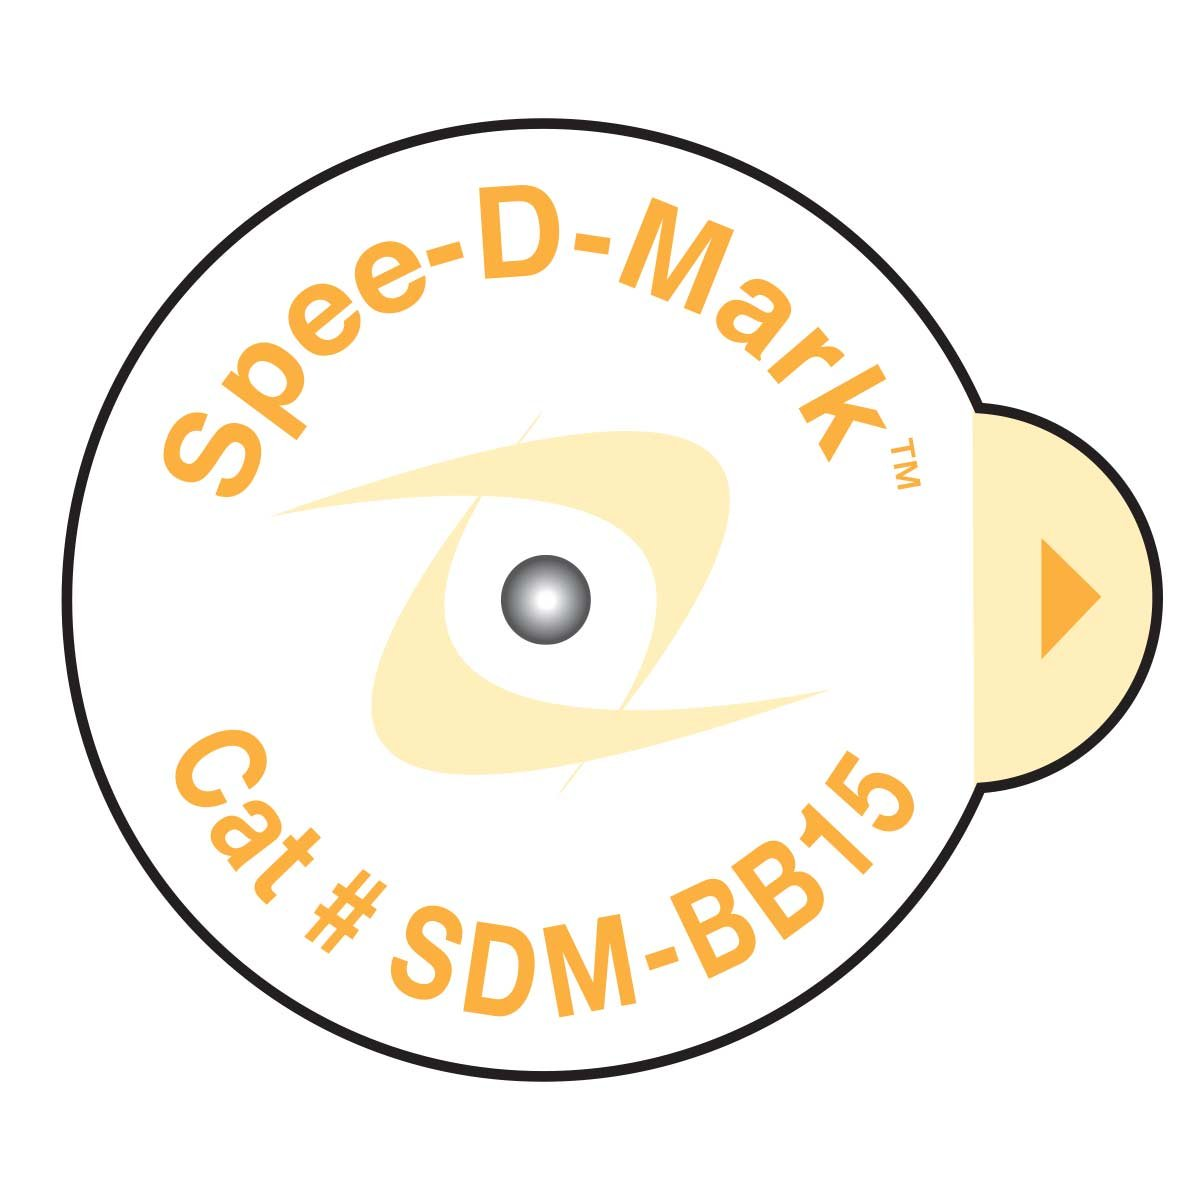 Spee-D-Mark SDM-BB15 Mammography Skin Marker Nipple Radiopaque, 1.5 mm Size (Box of 100)